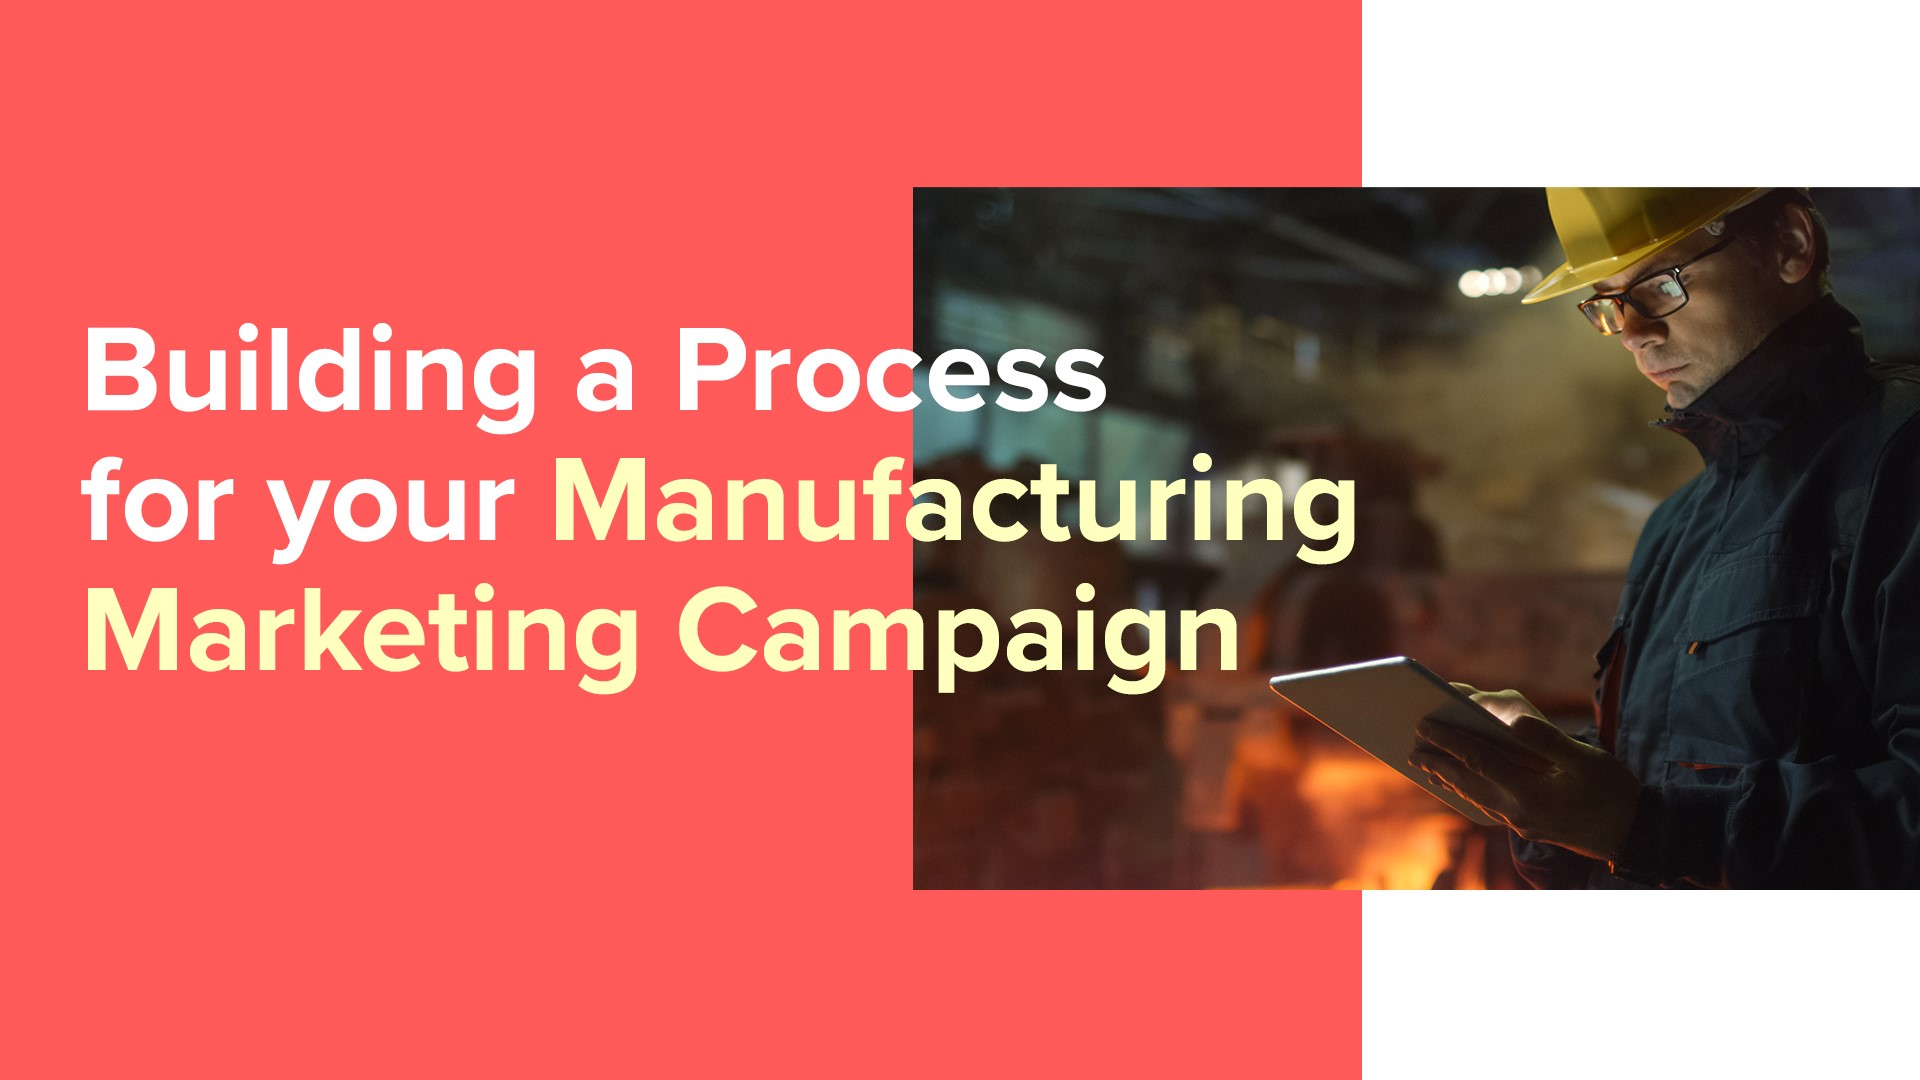 Building a Process for Your Manufacturing Marketing Campaign